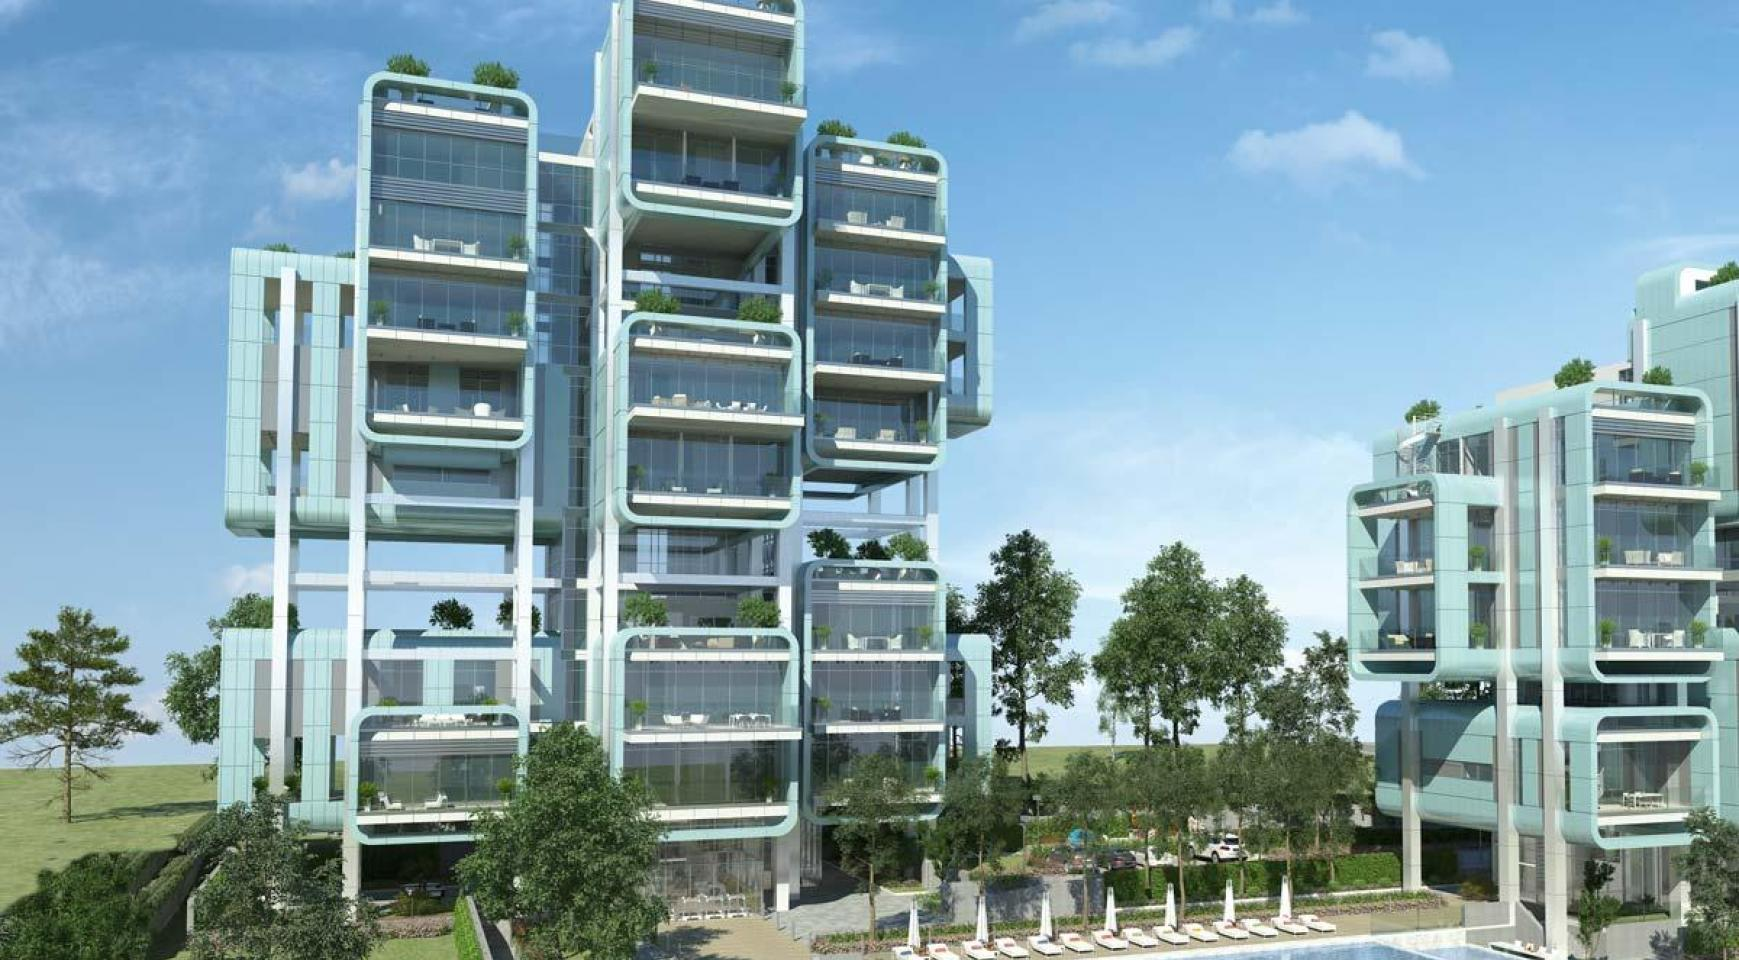 3 Bedroom Apartment with Roof Garden within a New Complex - 31